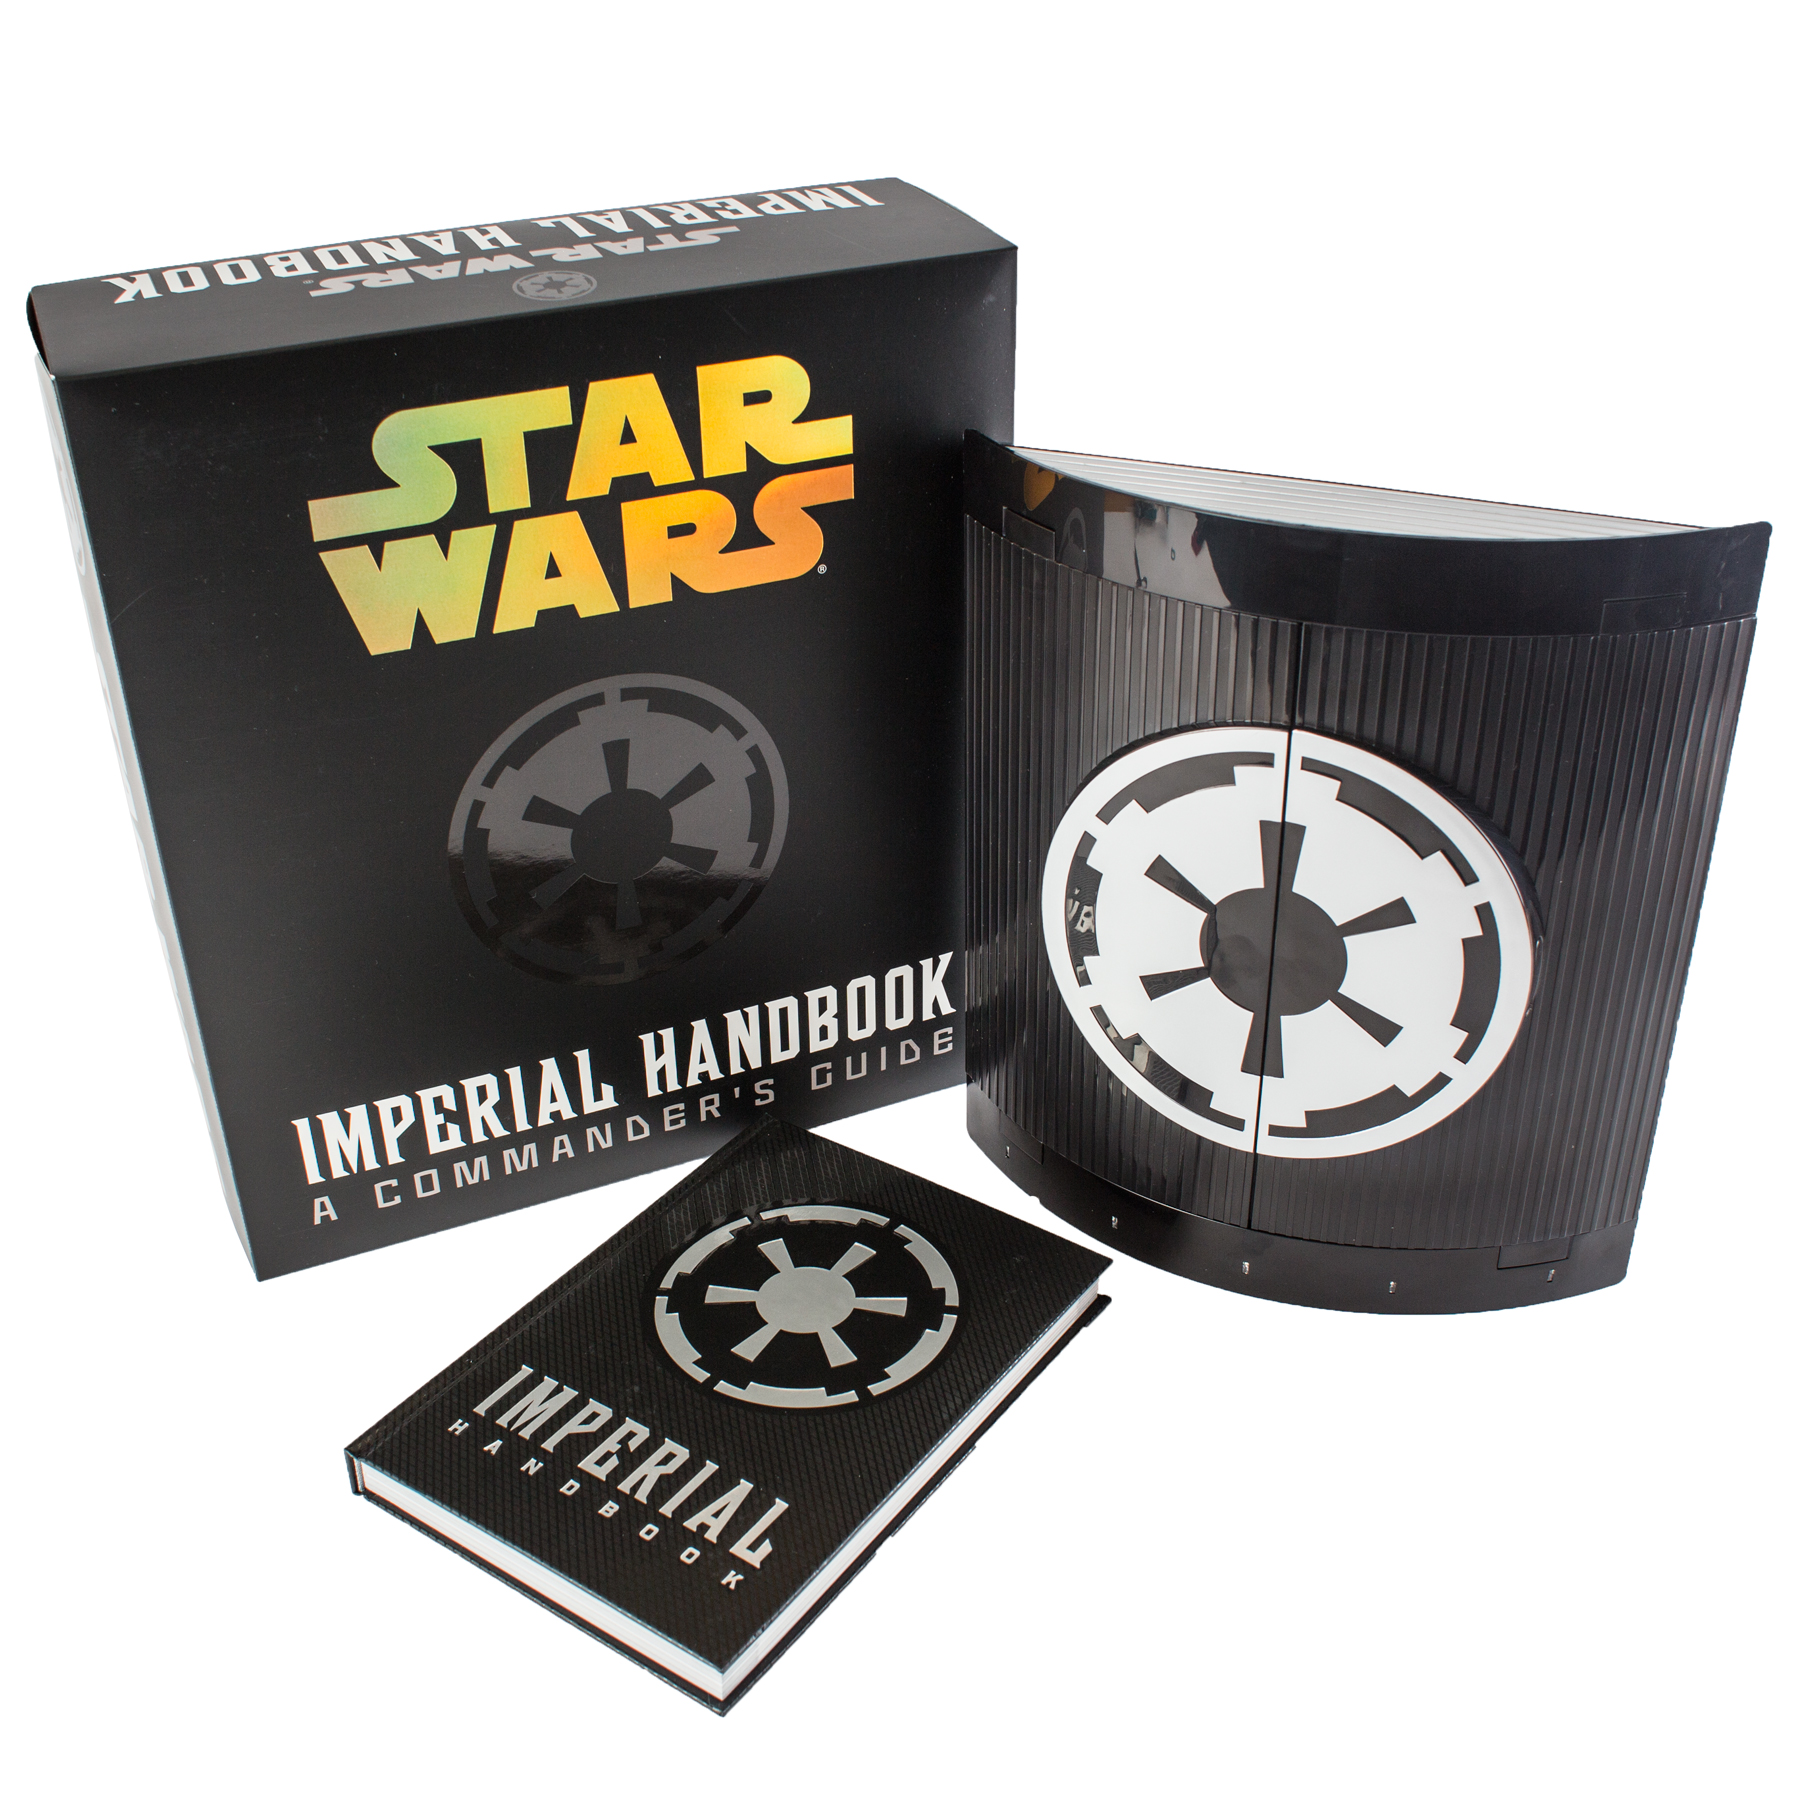 Star-Wars-Imperial-Handbook-Deluxe-Edition-1402445032